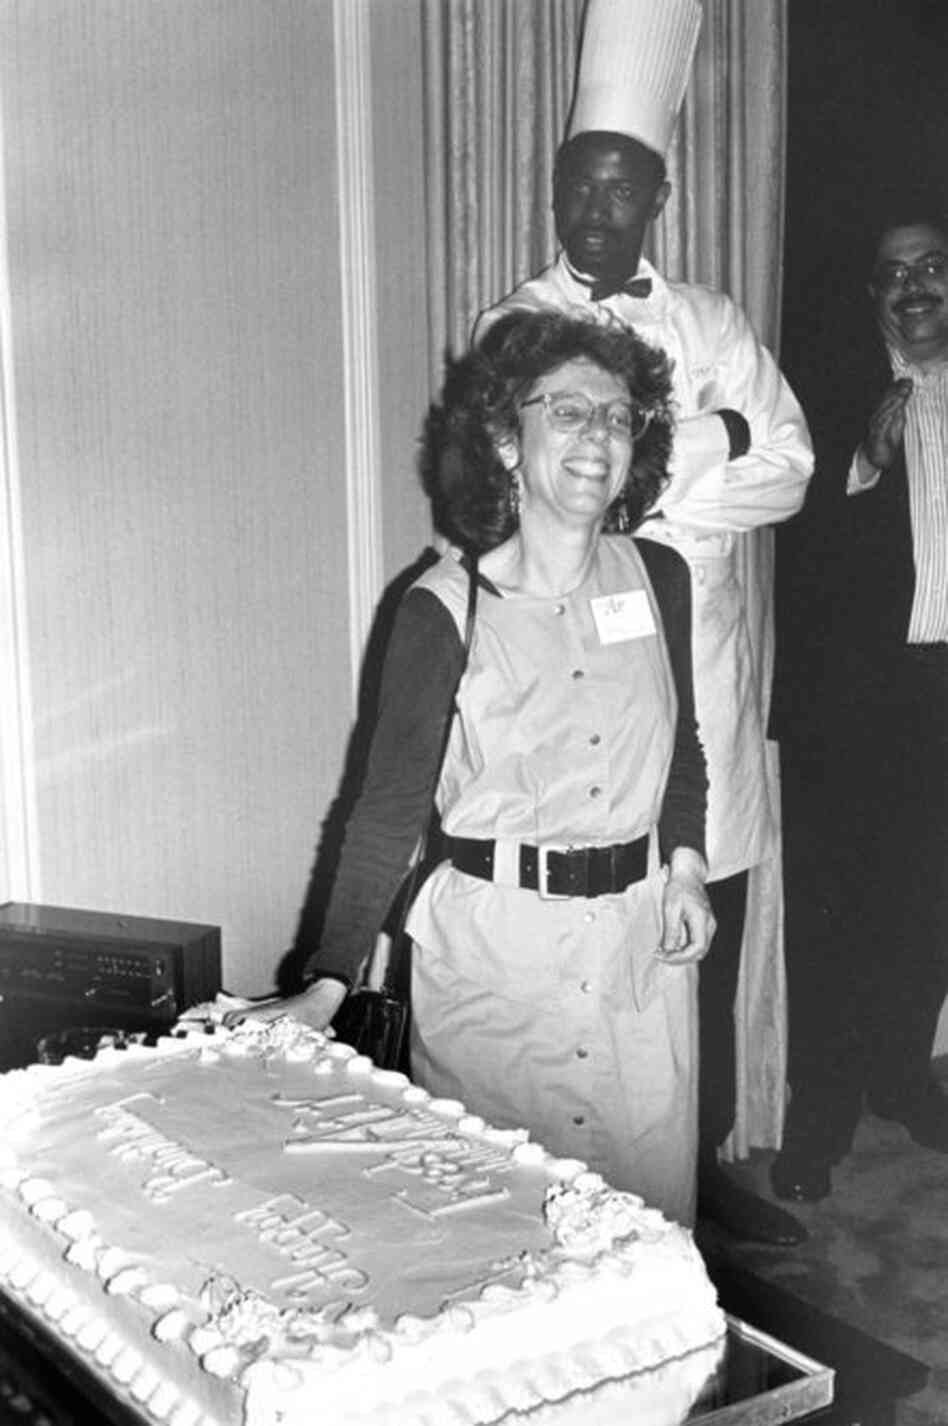 Terry Gross and Fresh Air staff celebrating its first anniversary as a national program in 1988.